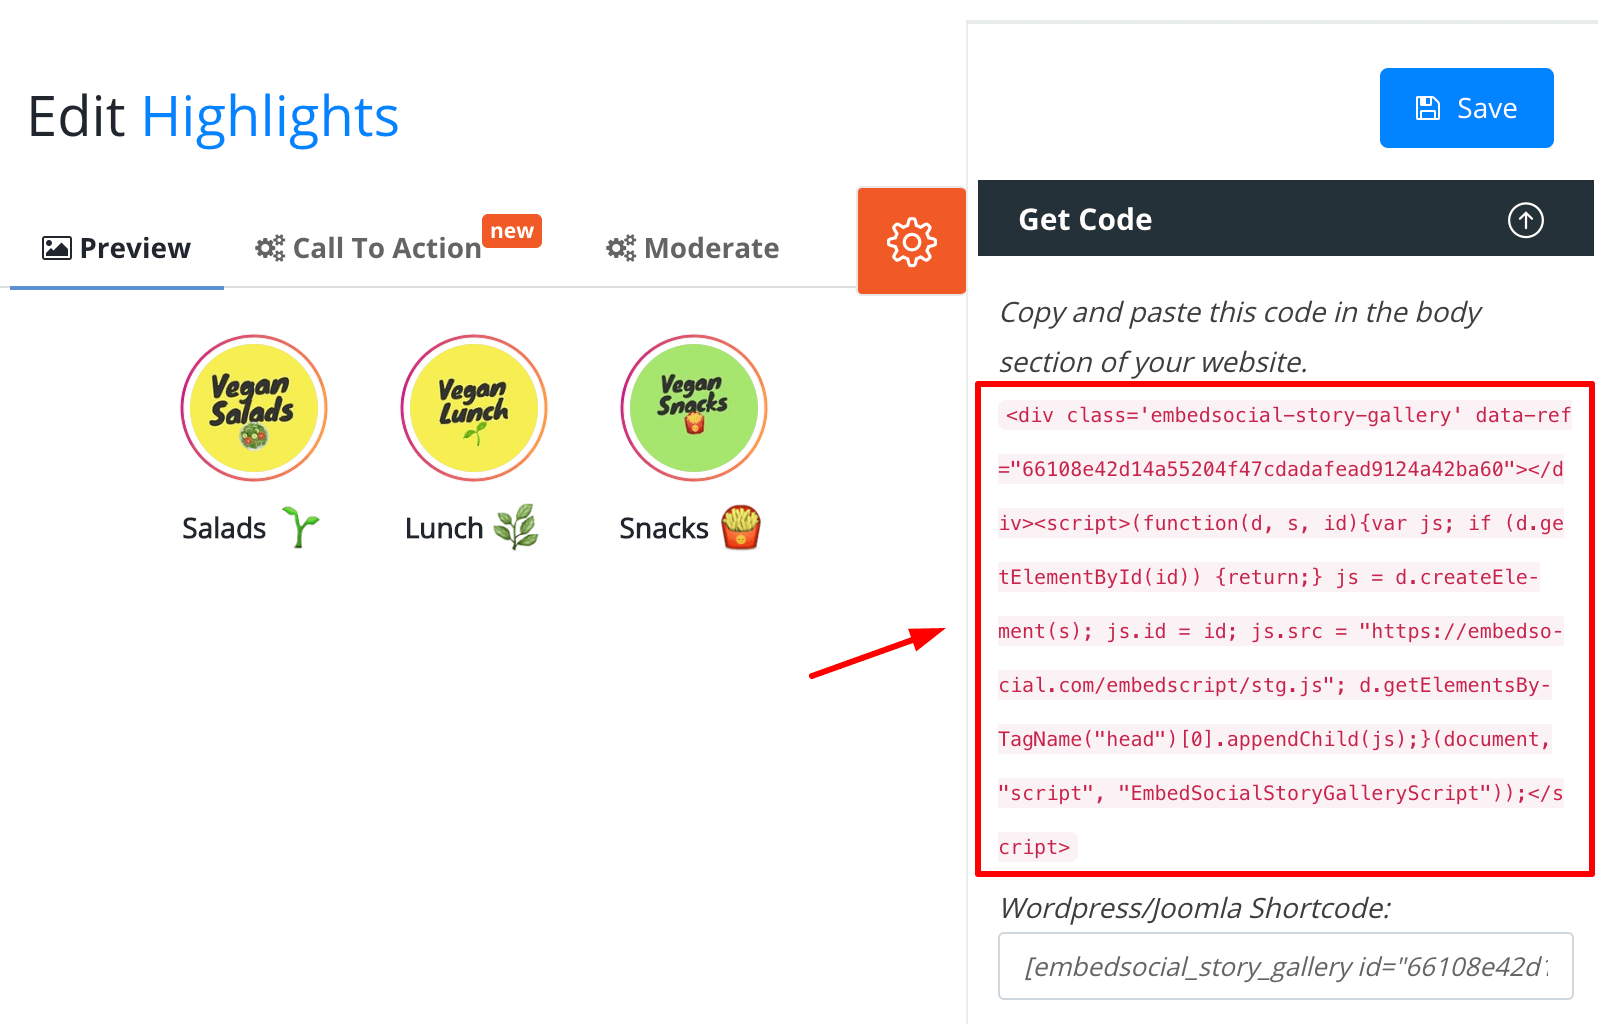 embeddable code for Instagram highlights